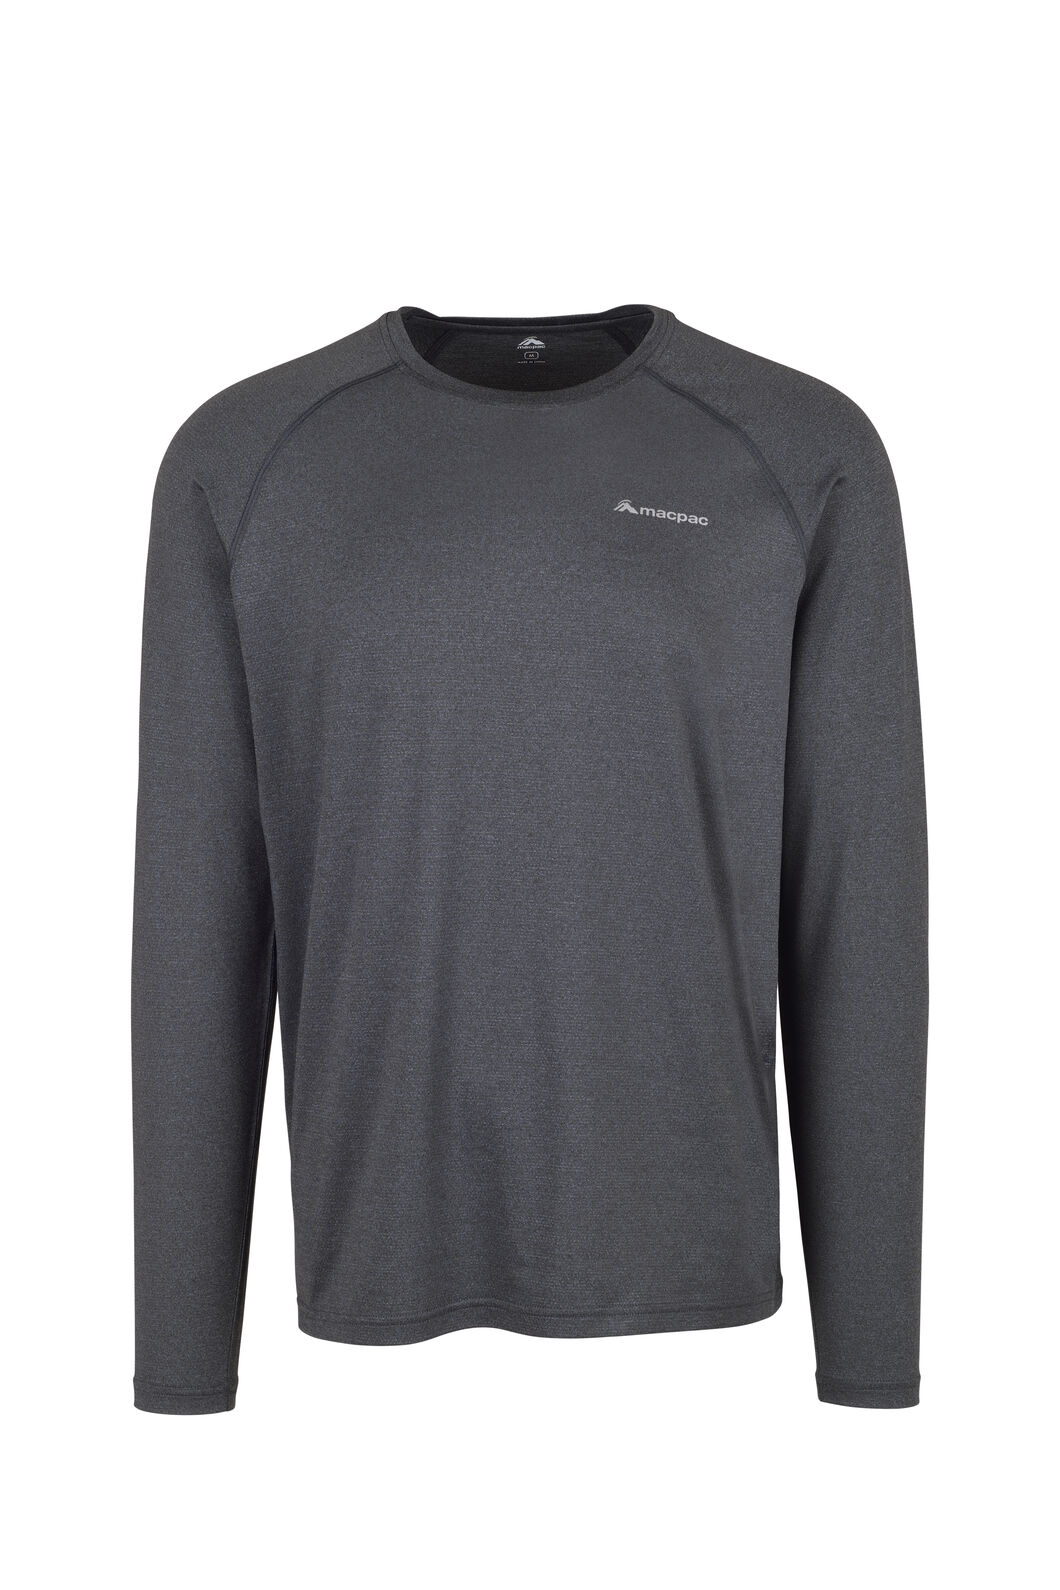 Macpac Eyre Long Sleeve Tee - Men's, Black, hi-res